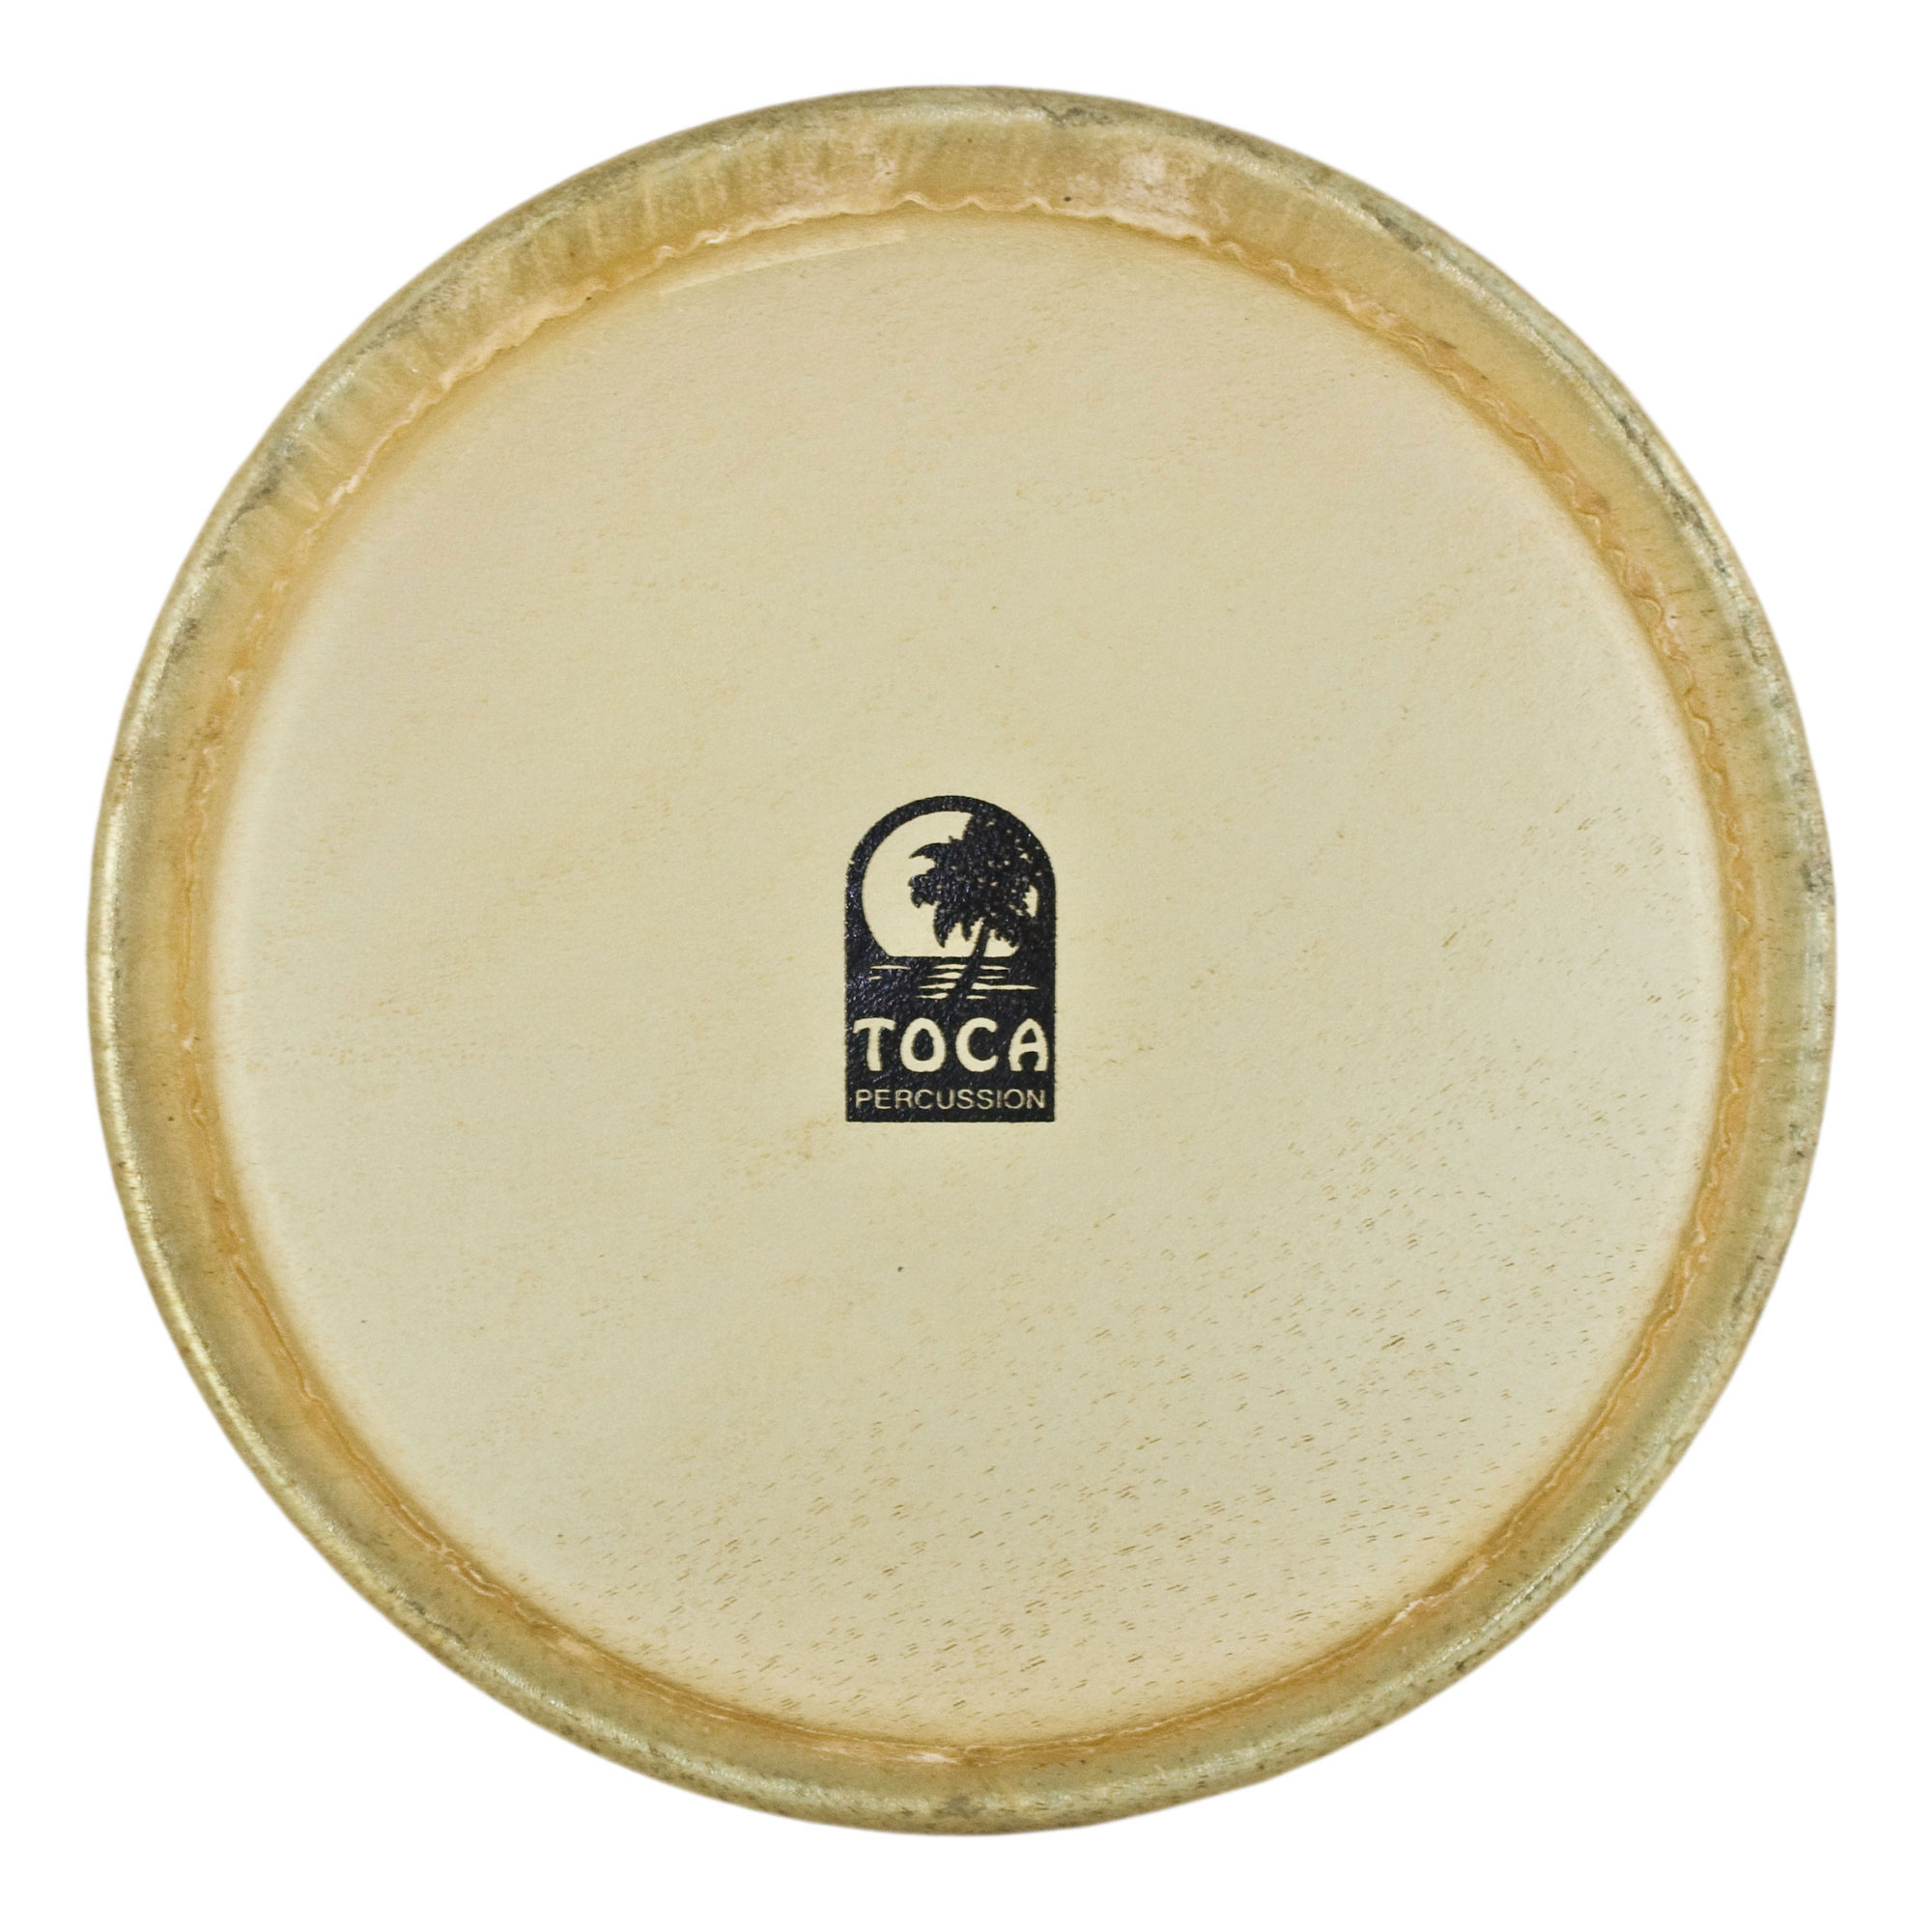 "Toca 7"" Traditional Rawhide Bongo Drum Head"